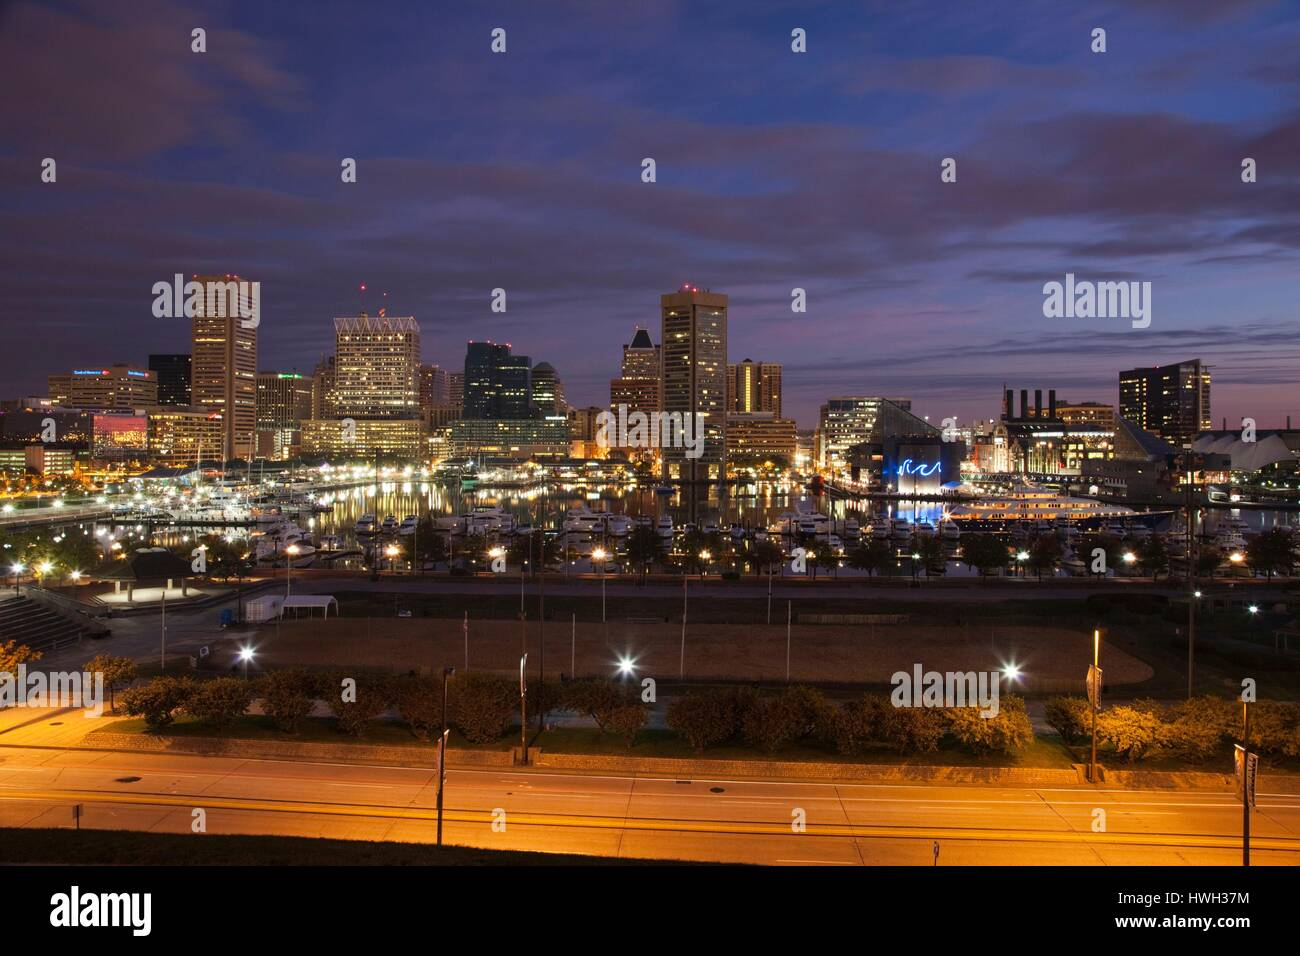 United States, Maryland, Baltimore, Inner Harbor, skyline from Federal Hill, dawn - Stock Image